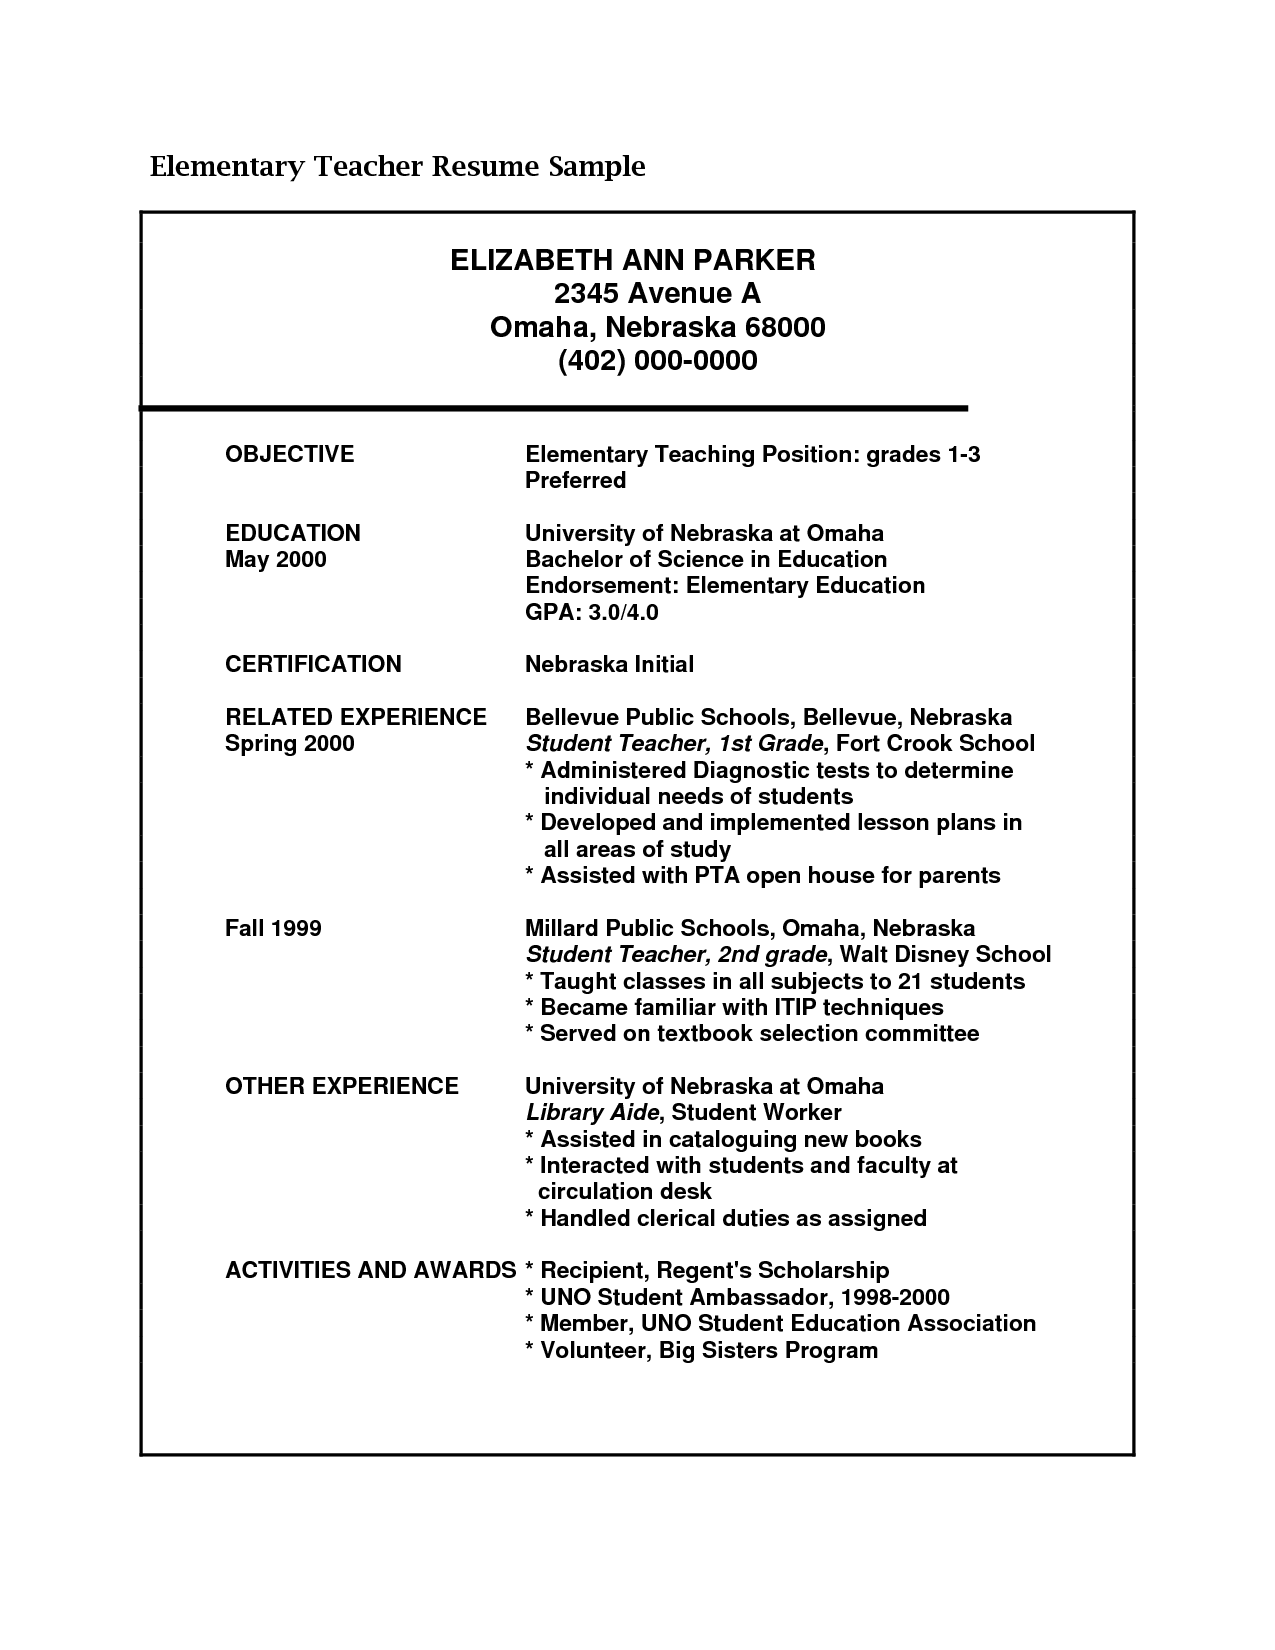 elementary teacher resume example are really great examples of resume and curriculum vitae for those who are looking for job - Free Teaching Resume Template